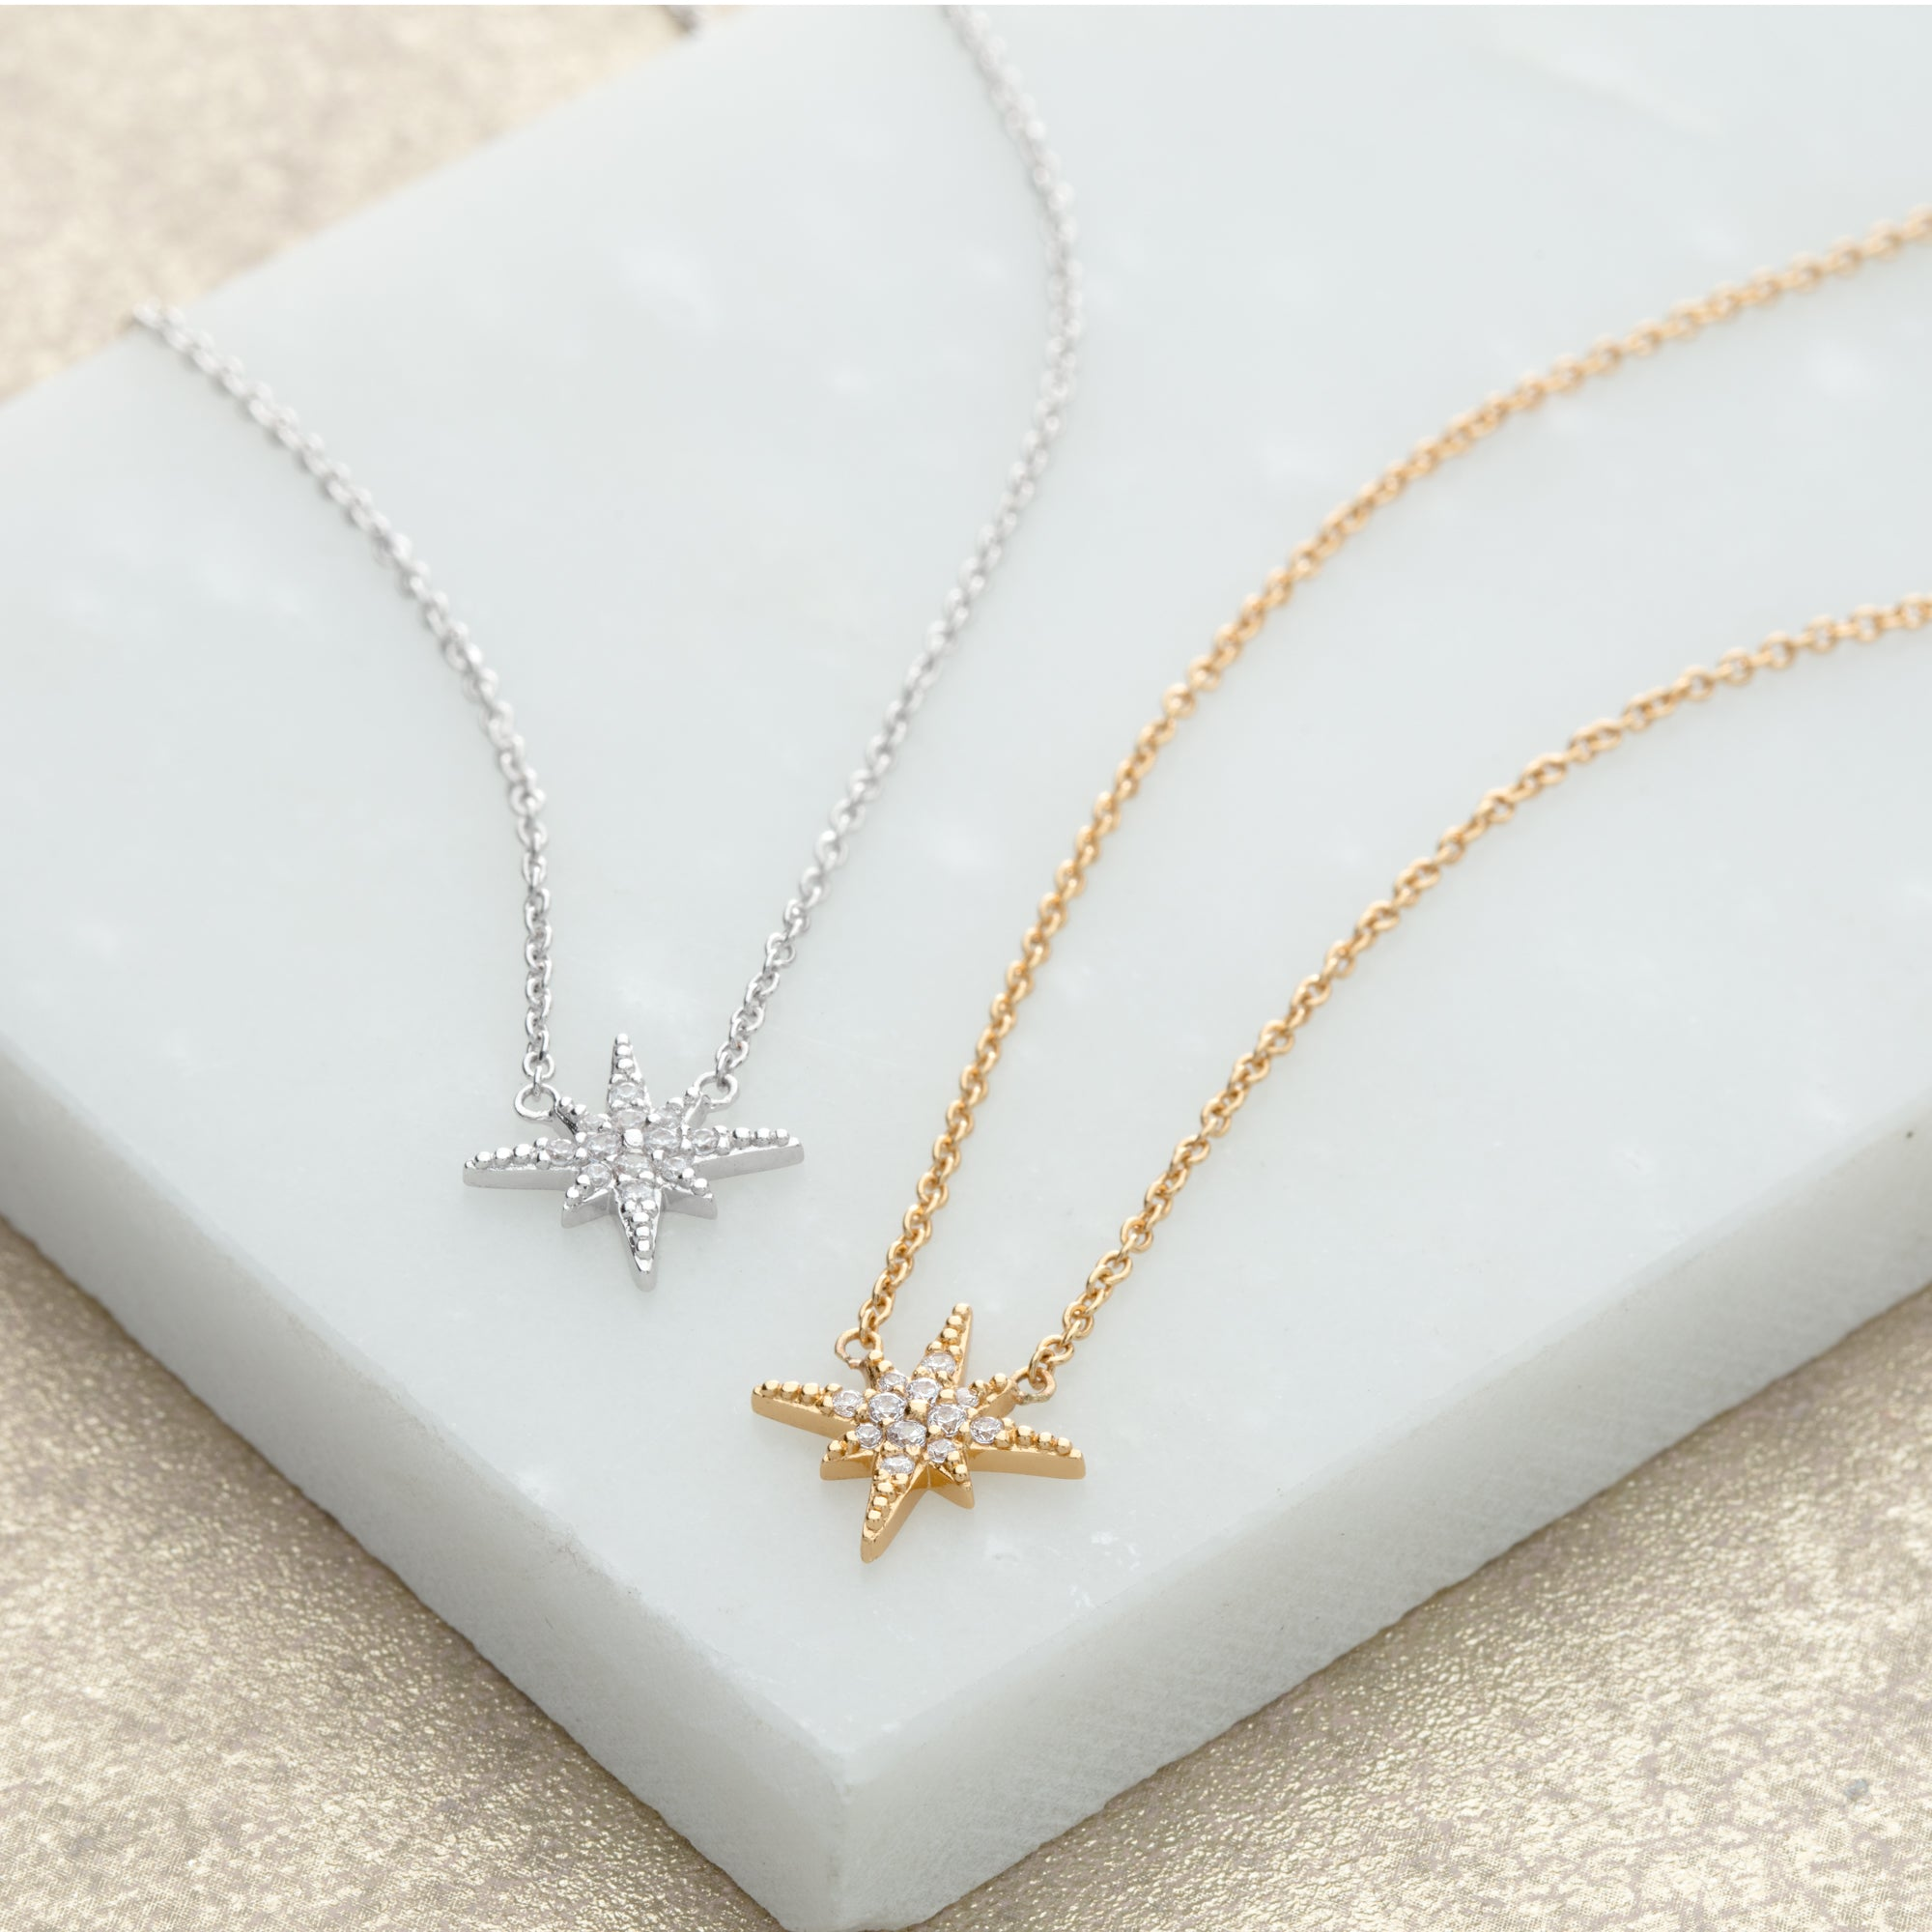 Starburst Necklace  - Gold Plated Brass